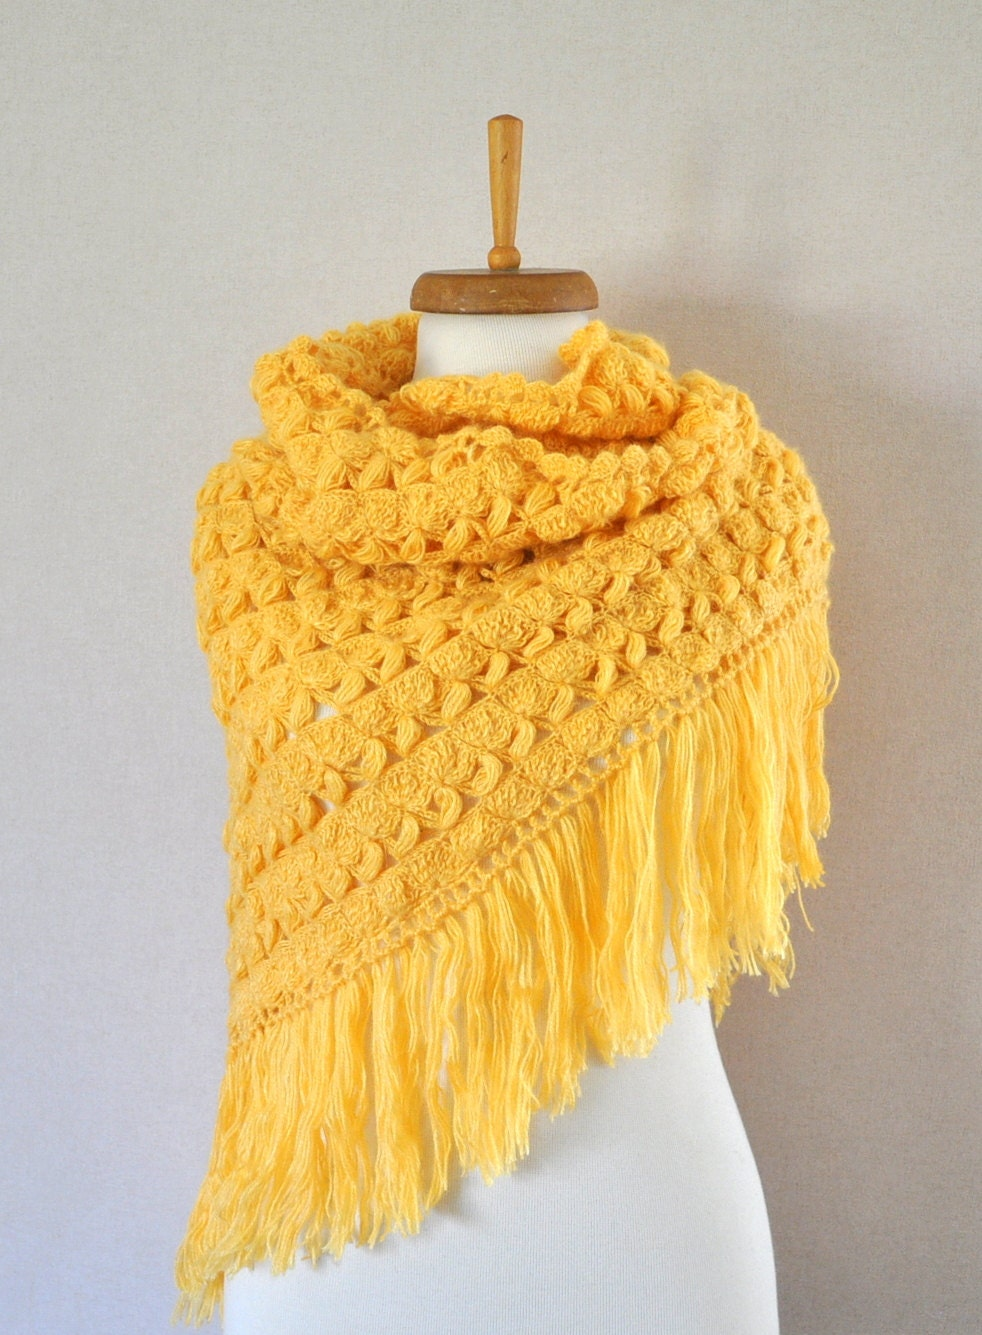 Crocheted shawl Yellow shawl Mohair Shawl Crochet shawl Yellow Bridal Shawl